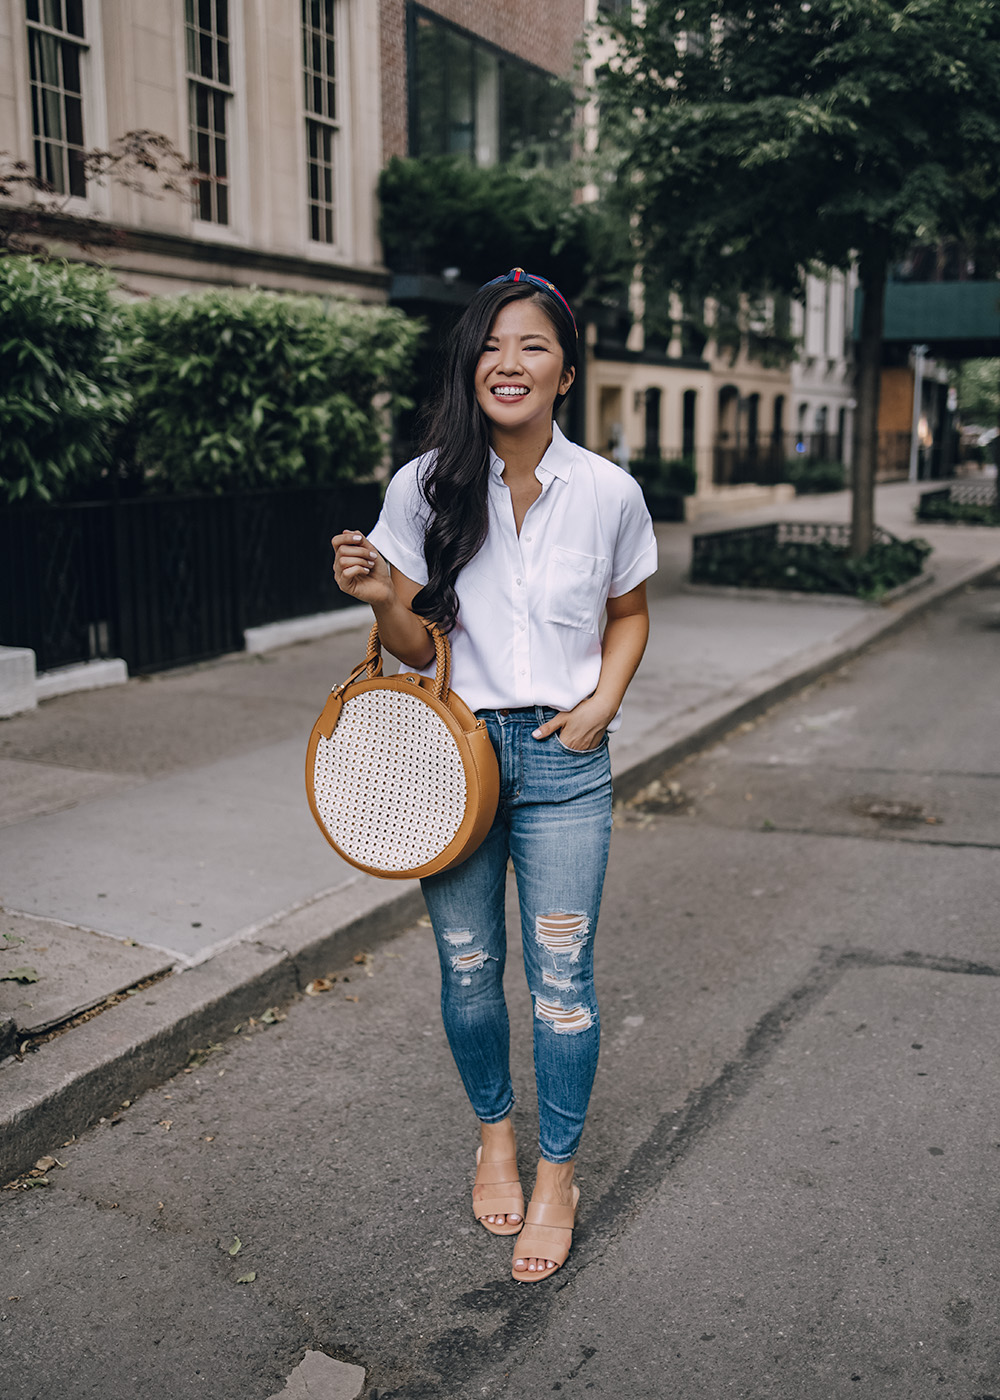 Casual Outfit for Women: White Short Sleeve Top & Ripped Skinny Jeans